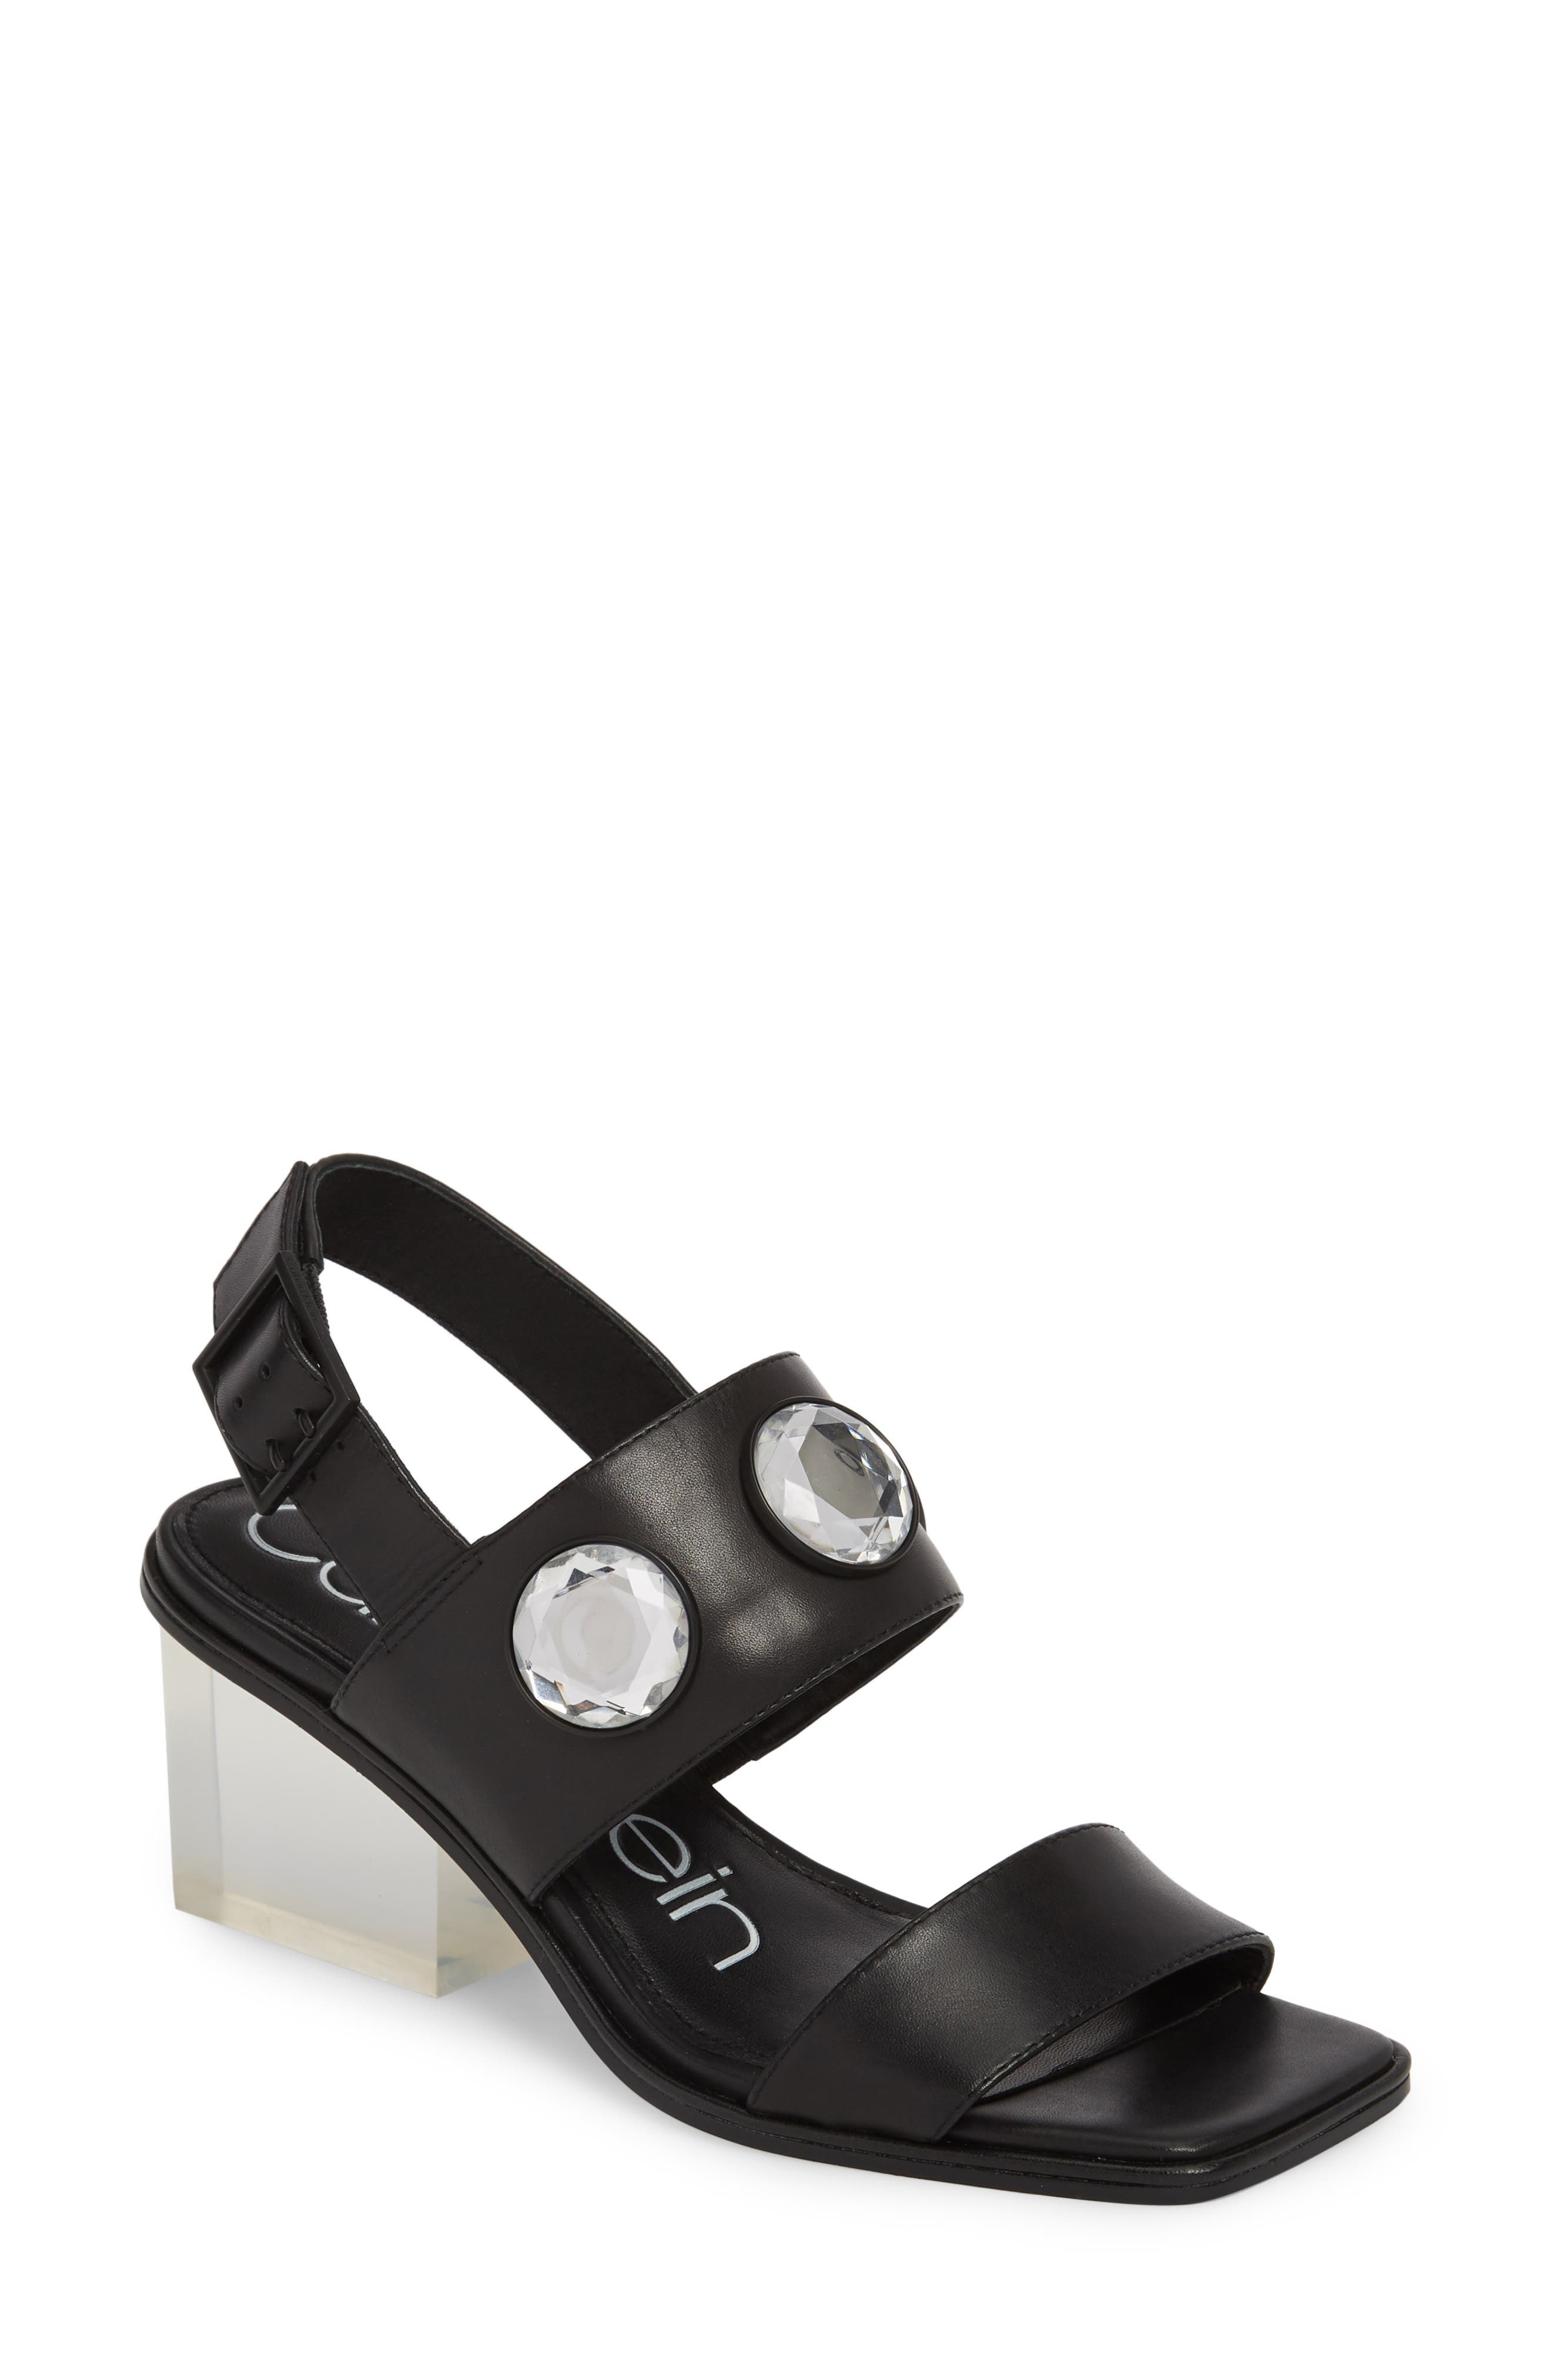 Kadyn Slingback Sandal,                             Main thumbnail 1, color,                             Black Leather